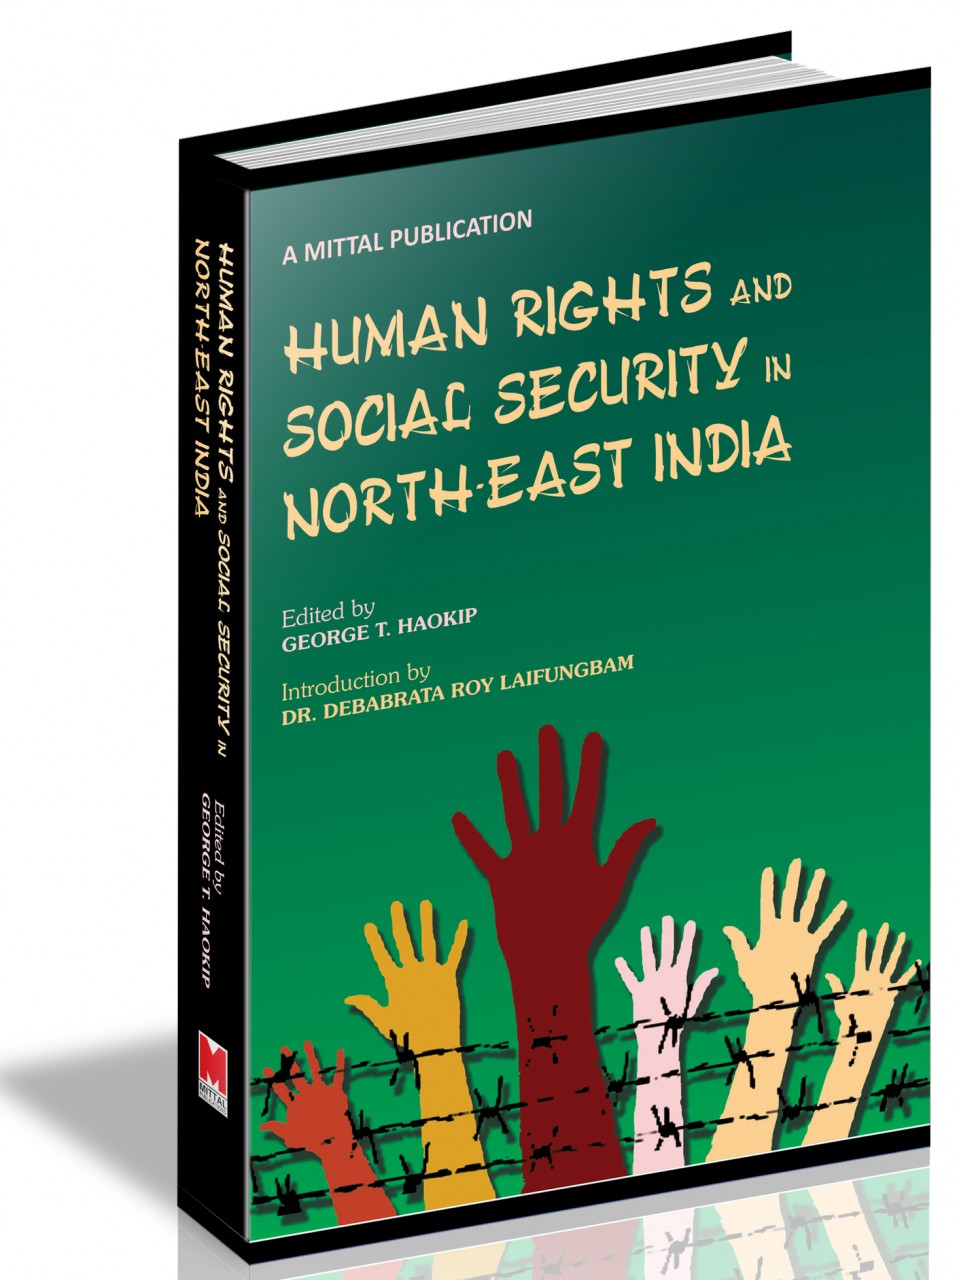 Human Rights and Social Security in North-East India